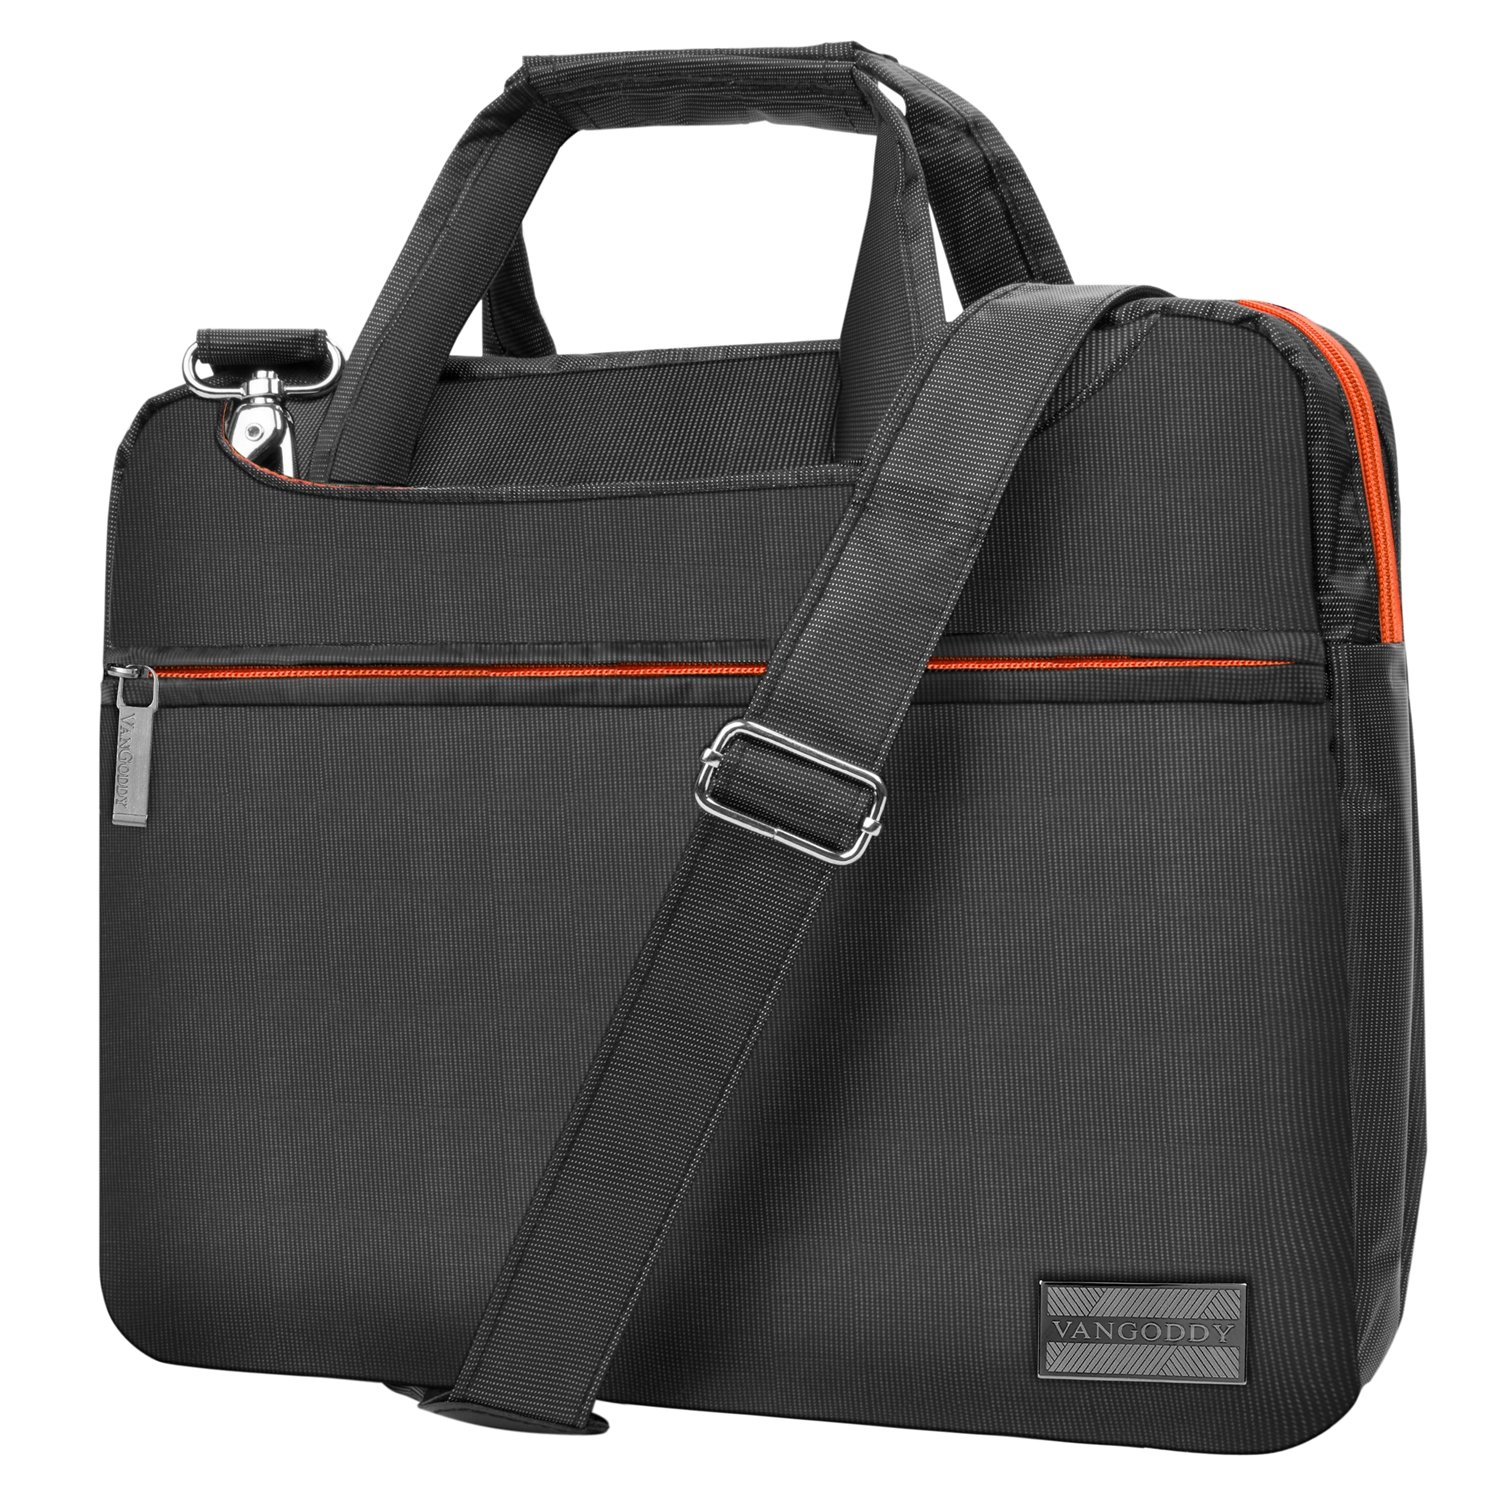 VanGoddy NineO 15 3-in-1 Water Resistant Nylon Messenger Shoulder Bag Briefcase (Gray/Orange) for Dell Inspiron 14 15 / Latitude 14 15 / Precision Mobile Workstation/XPS 15 Series 14'' 15.6'' Laptop by Vangoddy (Image #5)